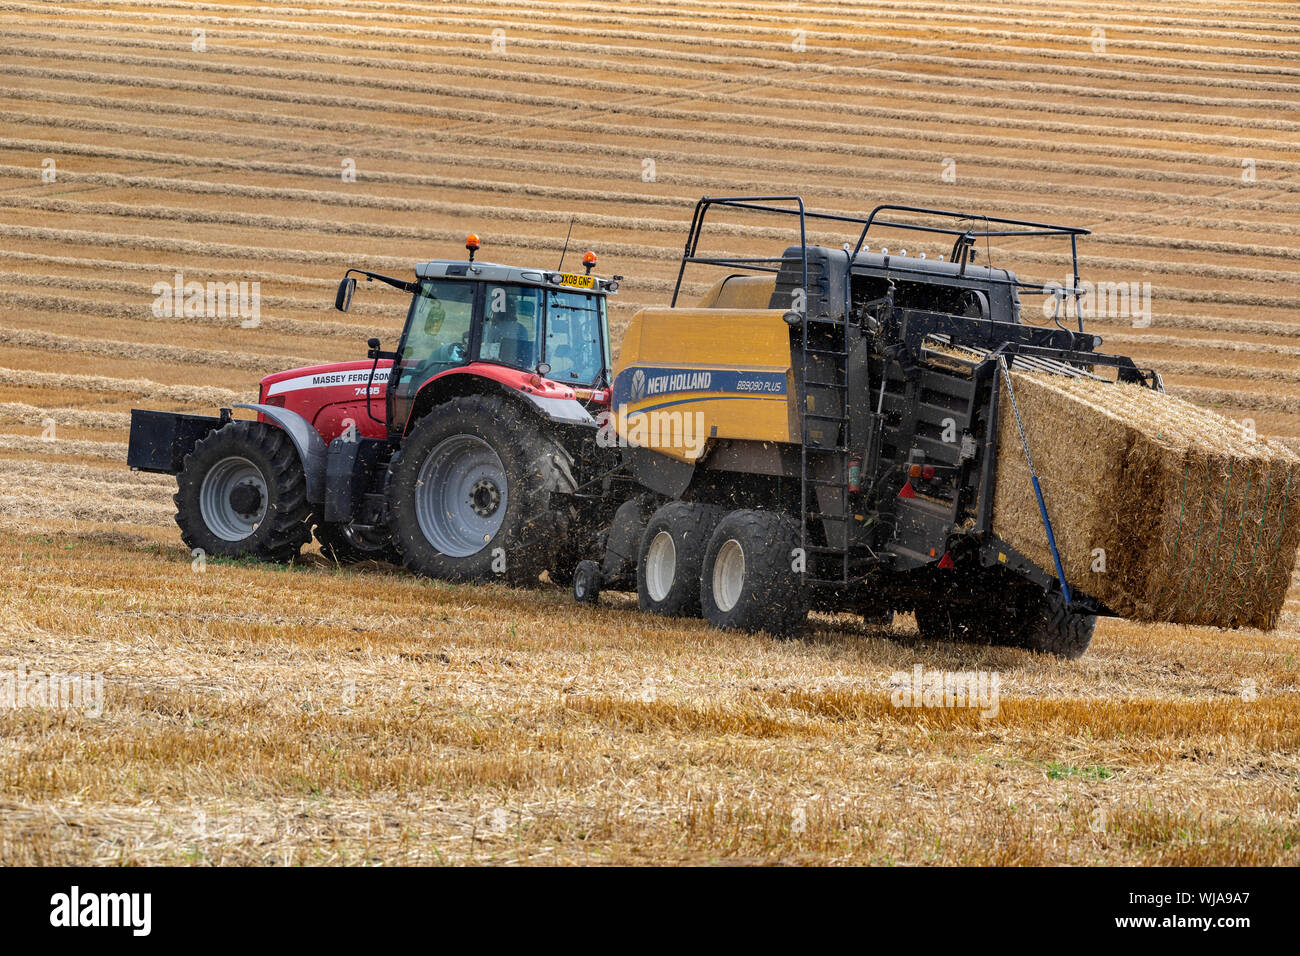 Hay Baler - farm machinery used to compress a cut and raked